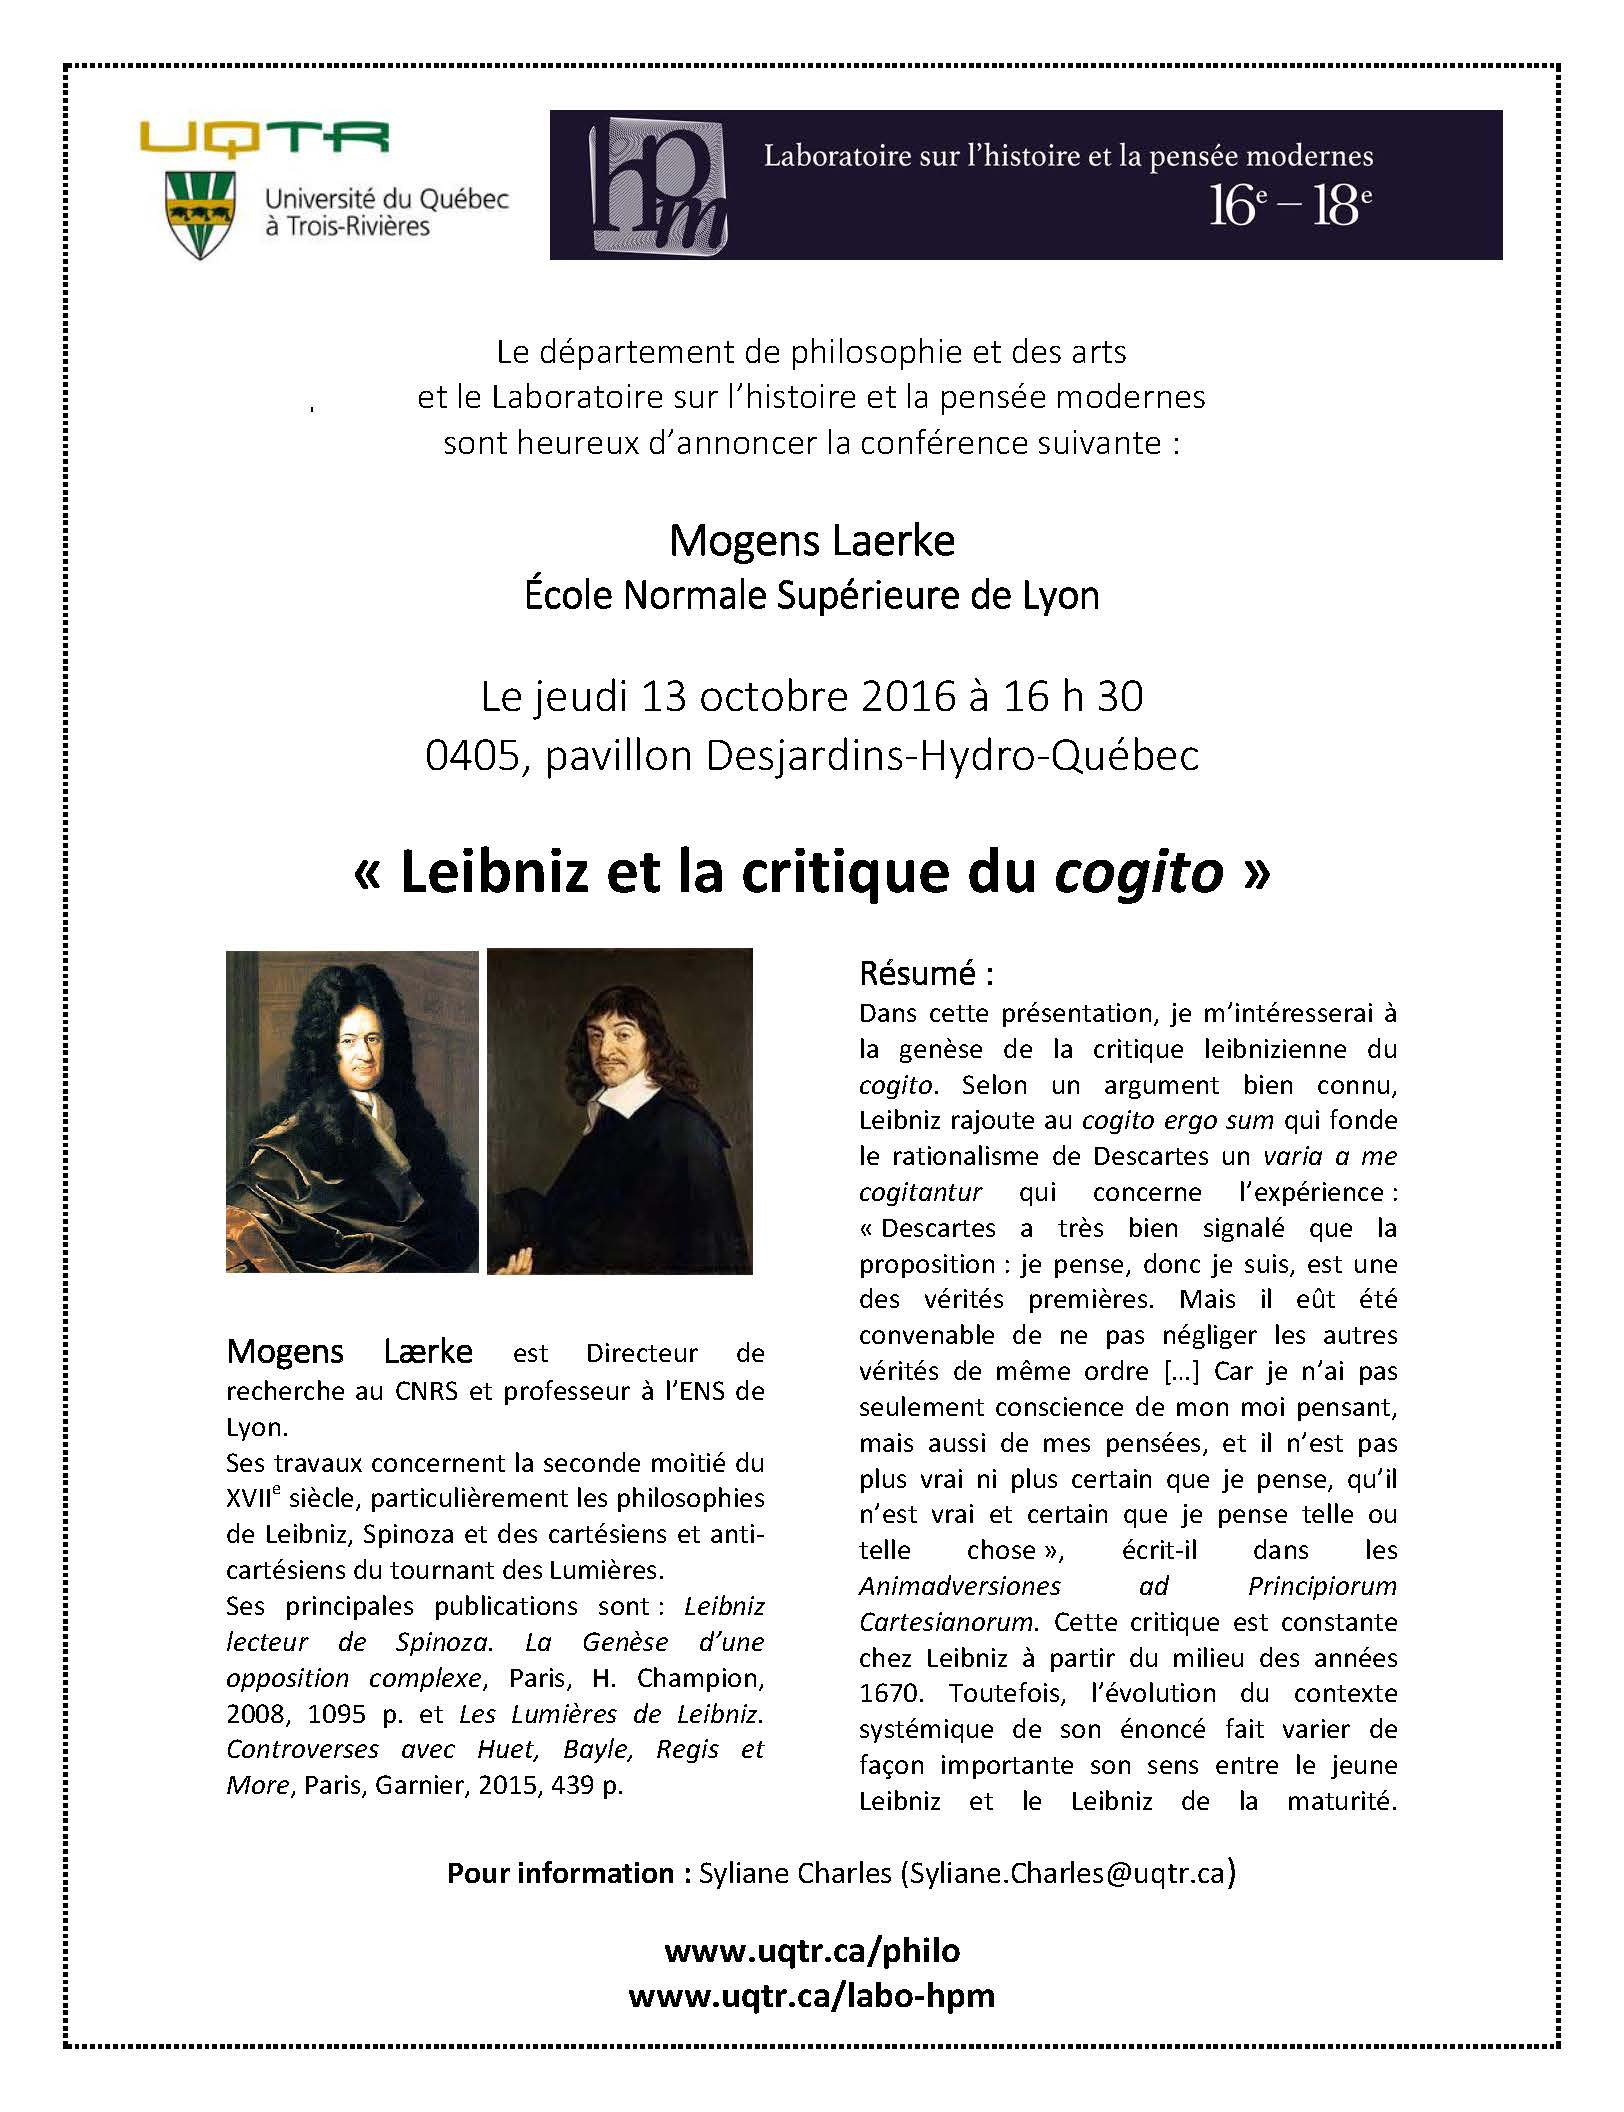 descartes dream argument essay A discussion of descartes' dream argument that logically questions not only the senses but their essay sample on the dream argument topics specifically for.